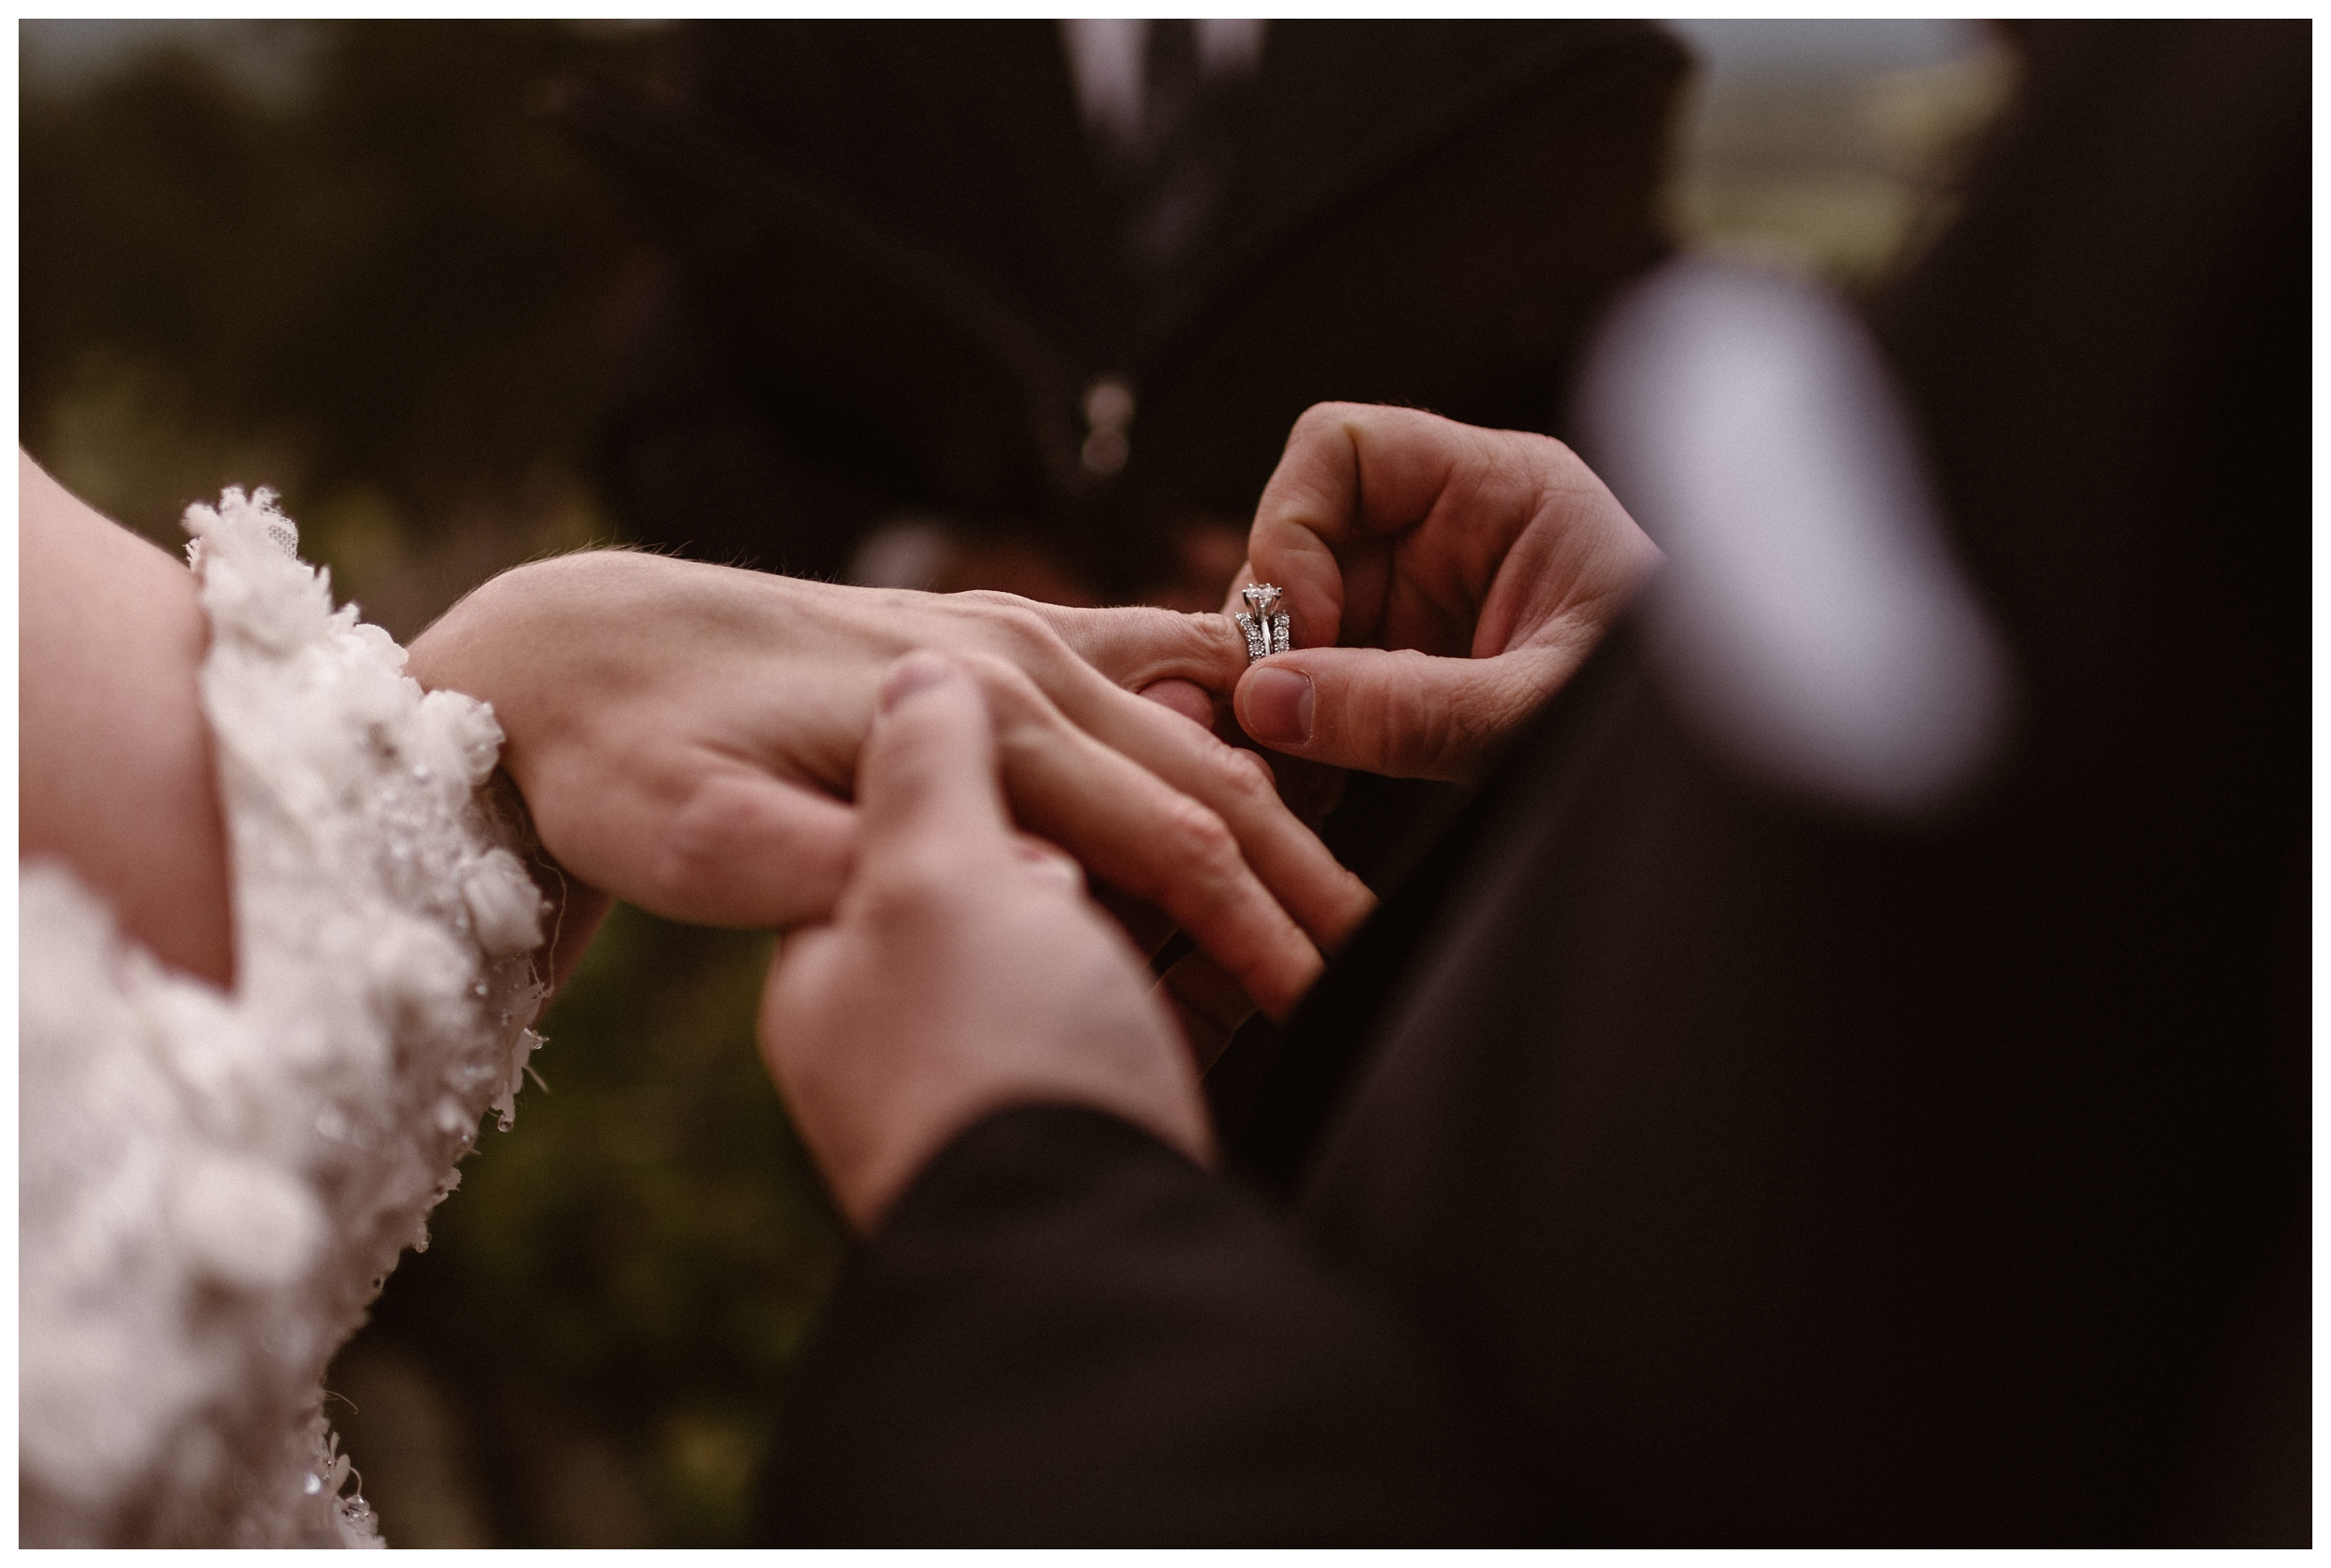 Zach places the wedding band on Alicia's finger during their intimate elopement ceremony at Rocky Mountain National Park. Photo by Adventure Instead, Maddie Mae.